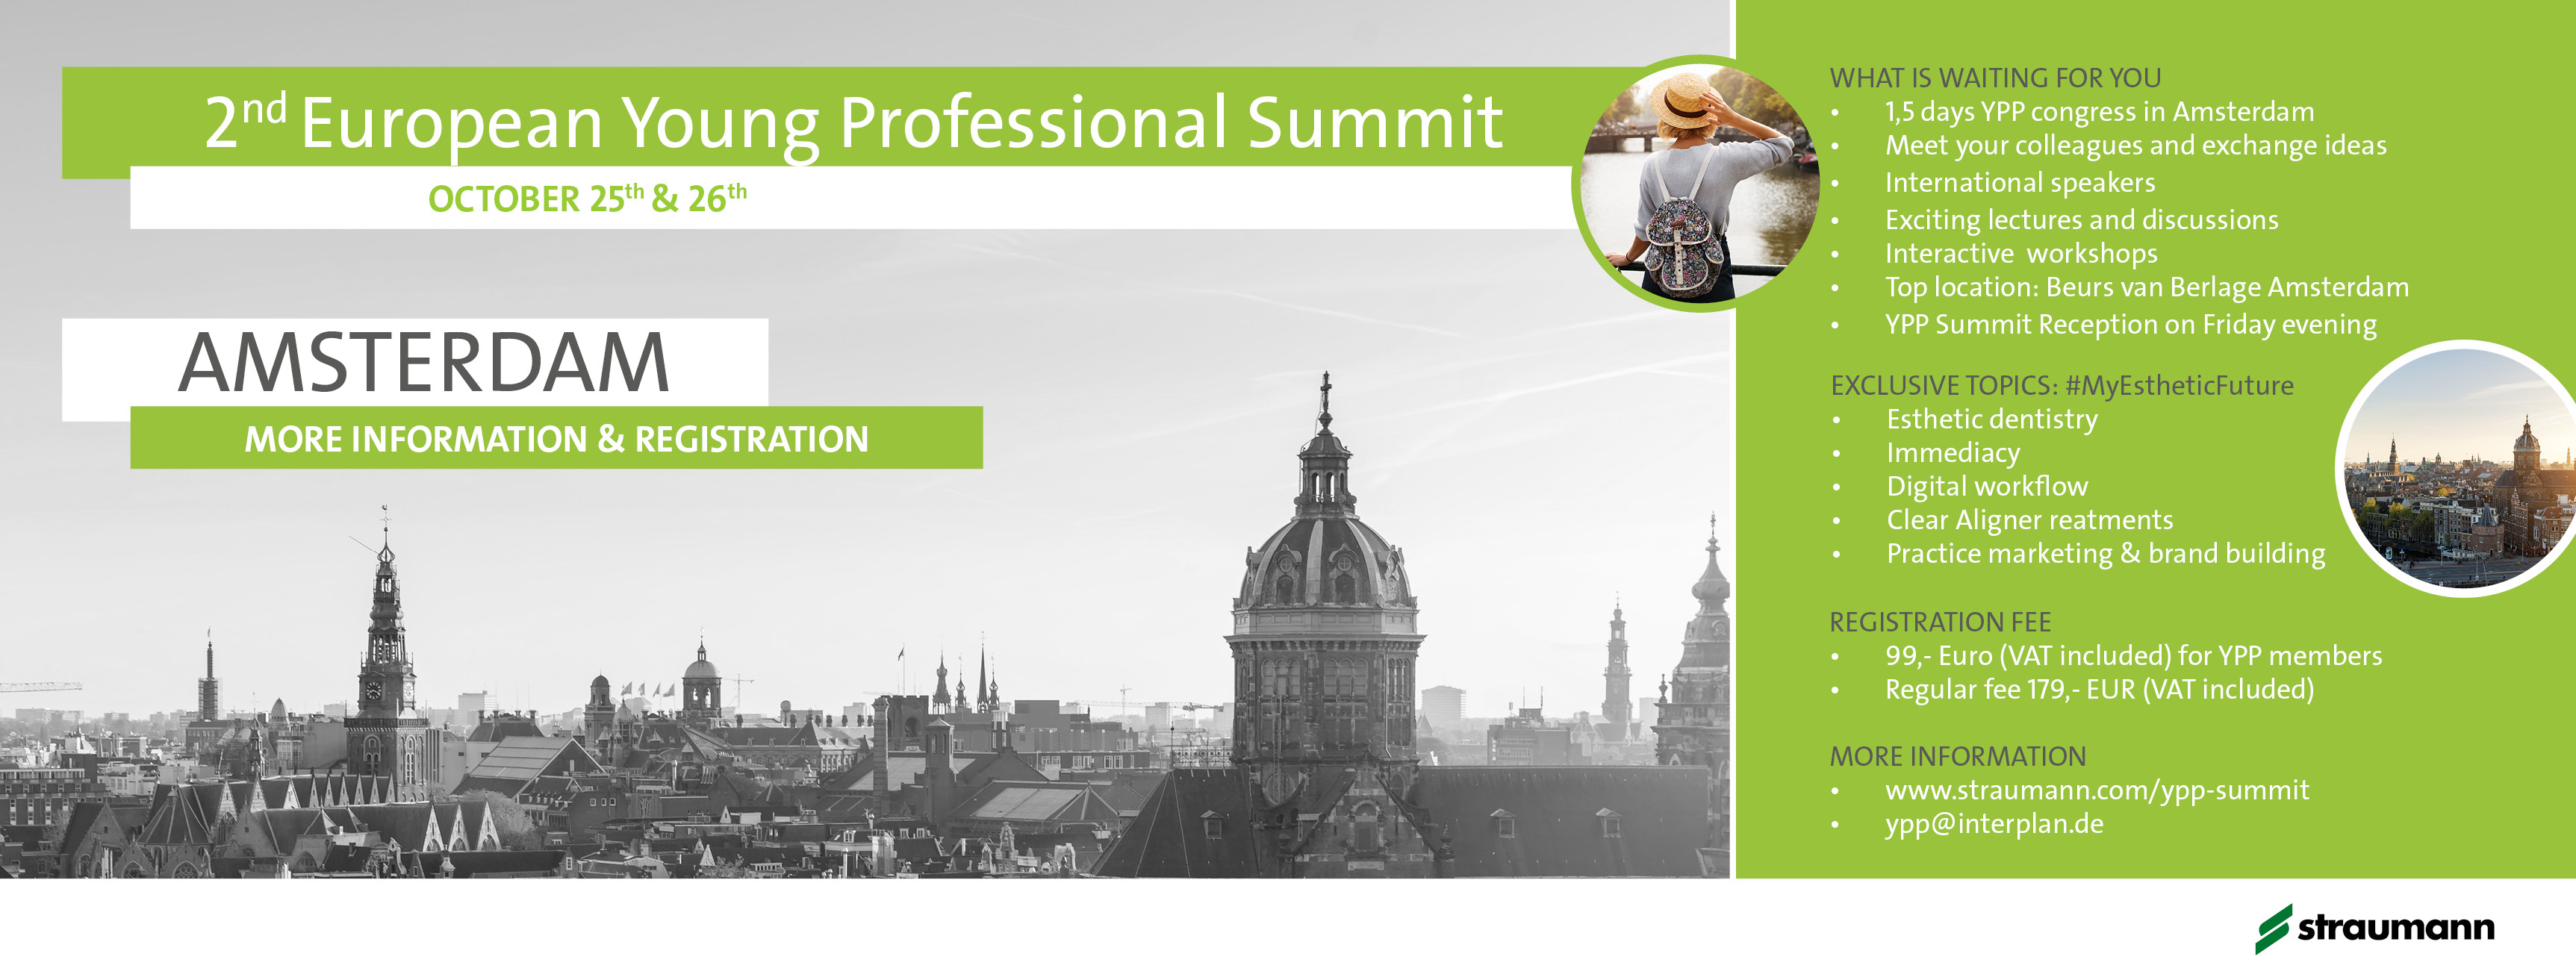 2nd European Young Professional Summit